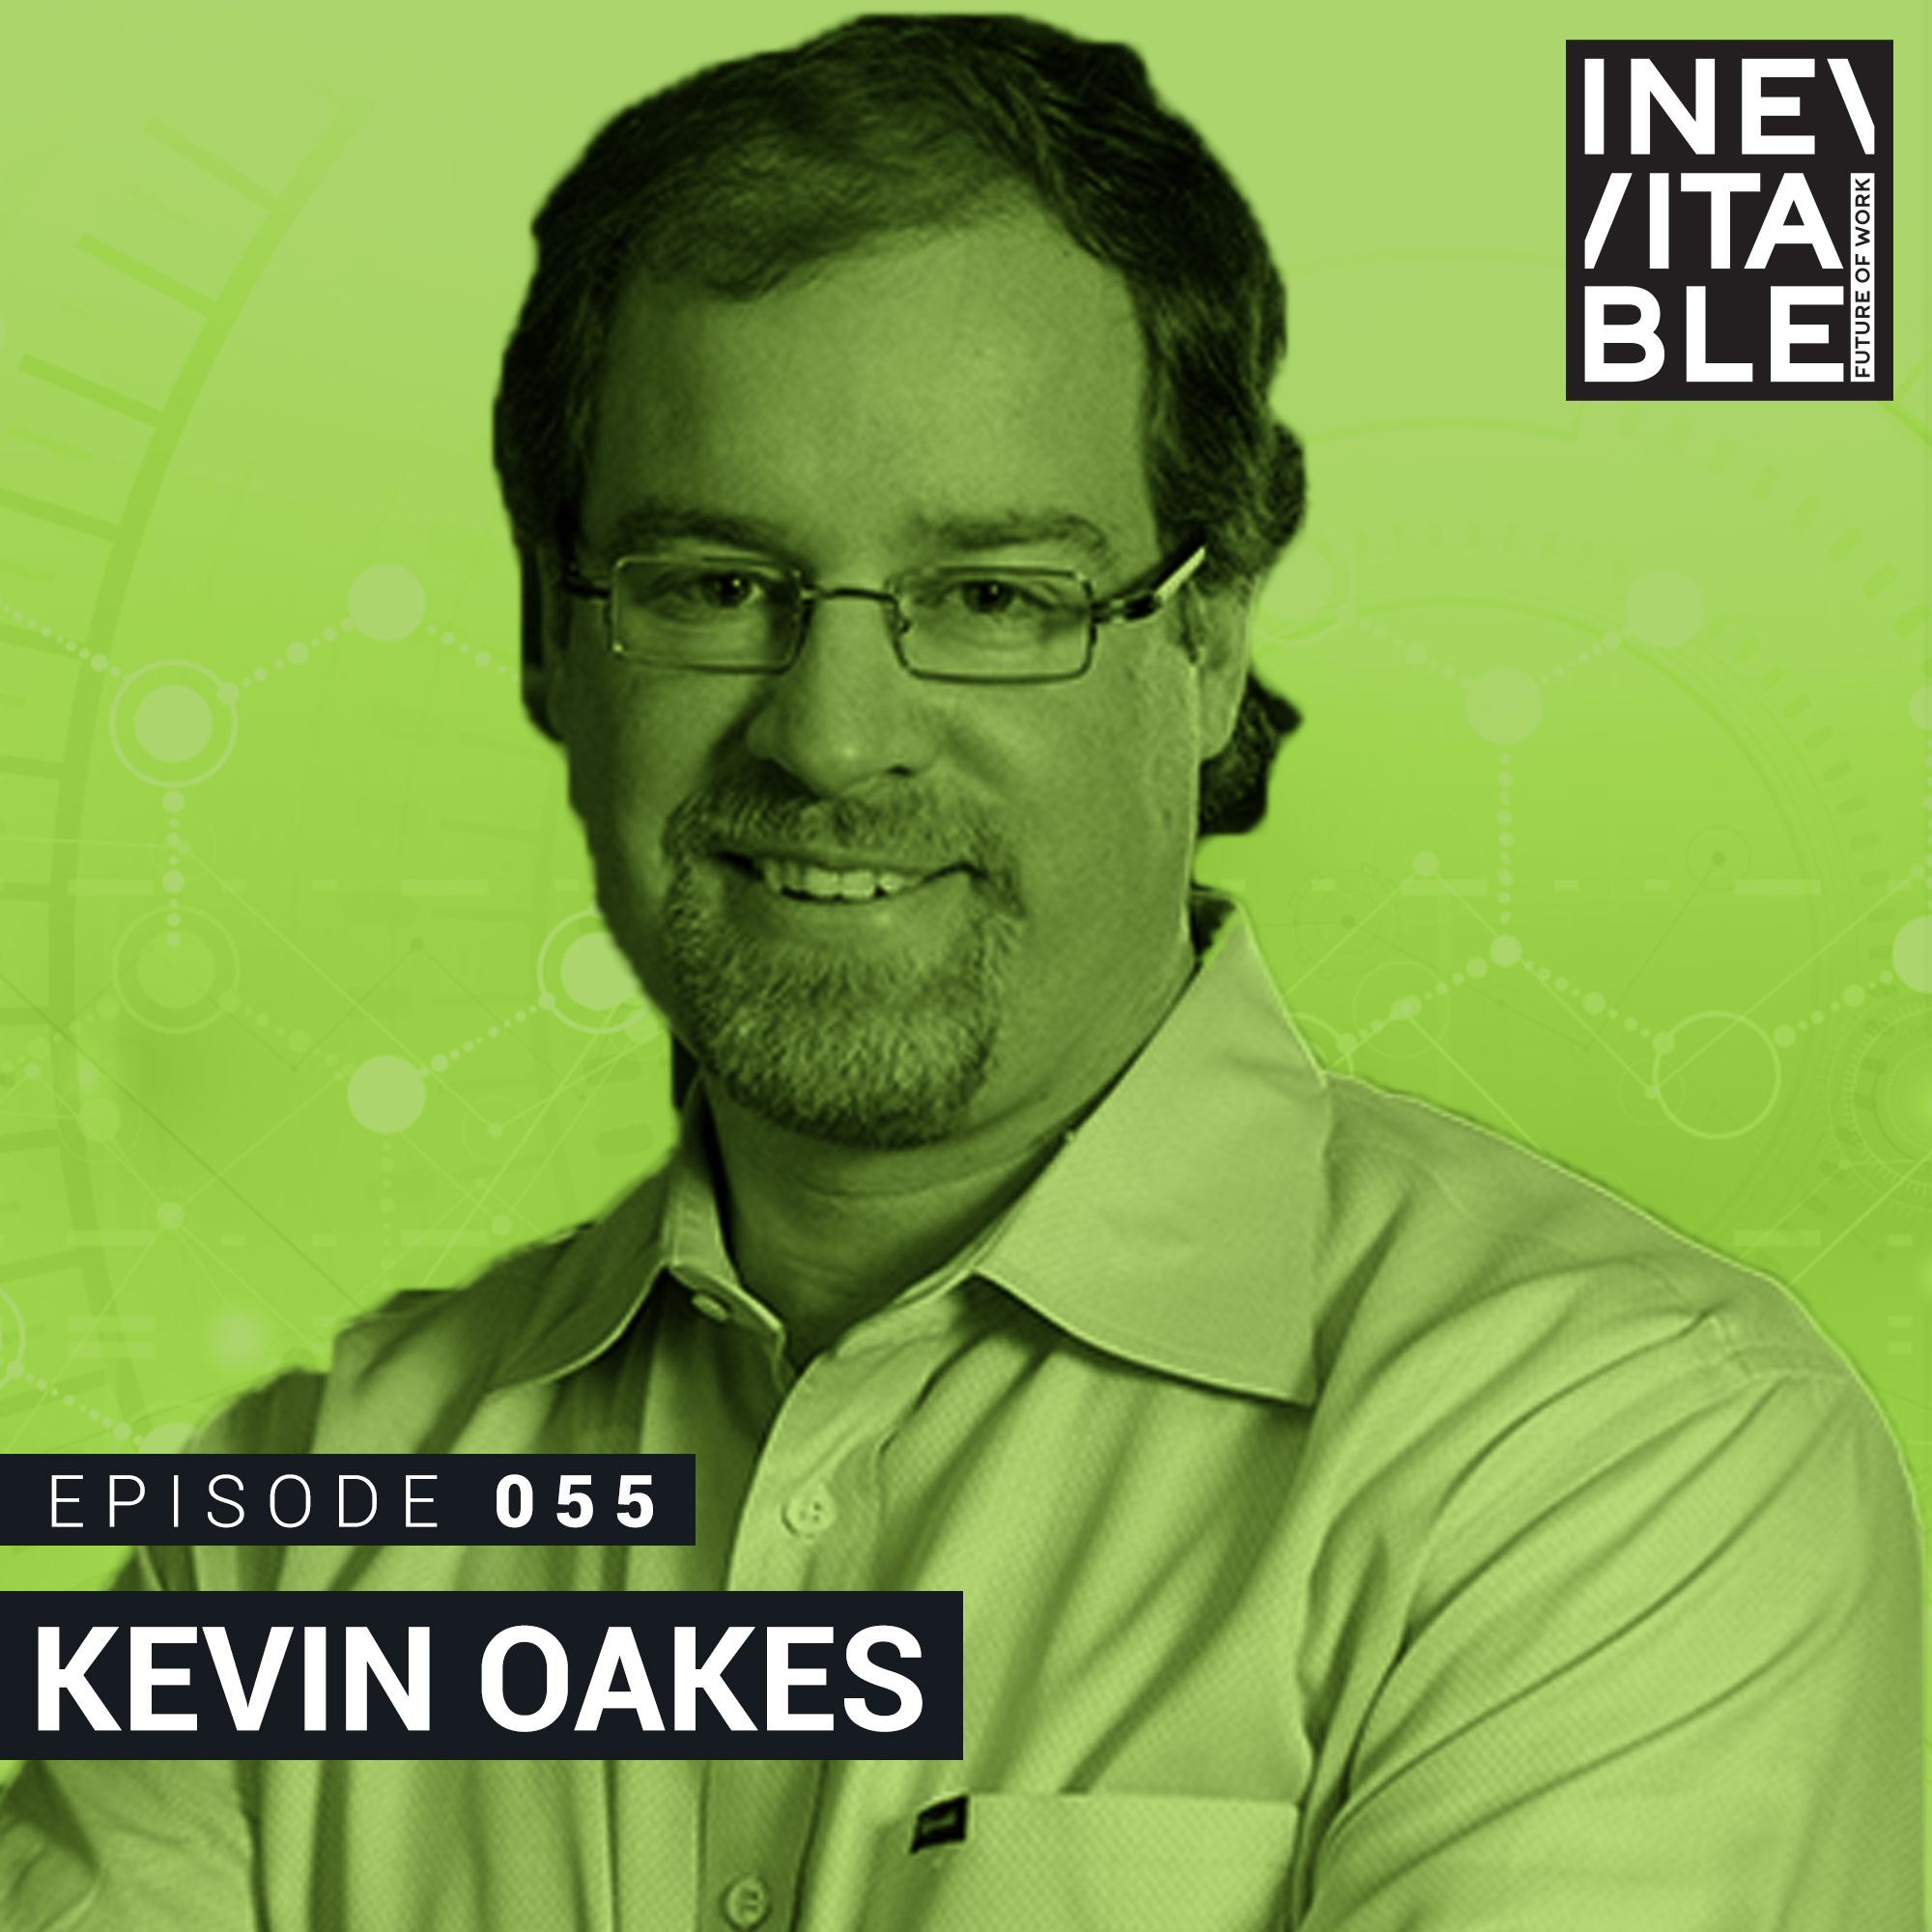 Kevin Oakes